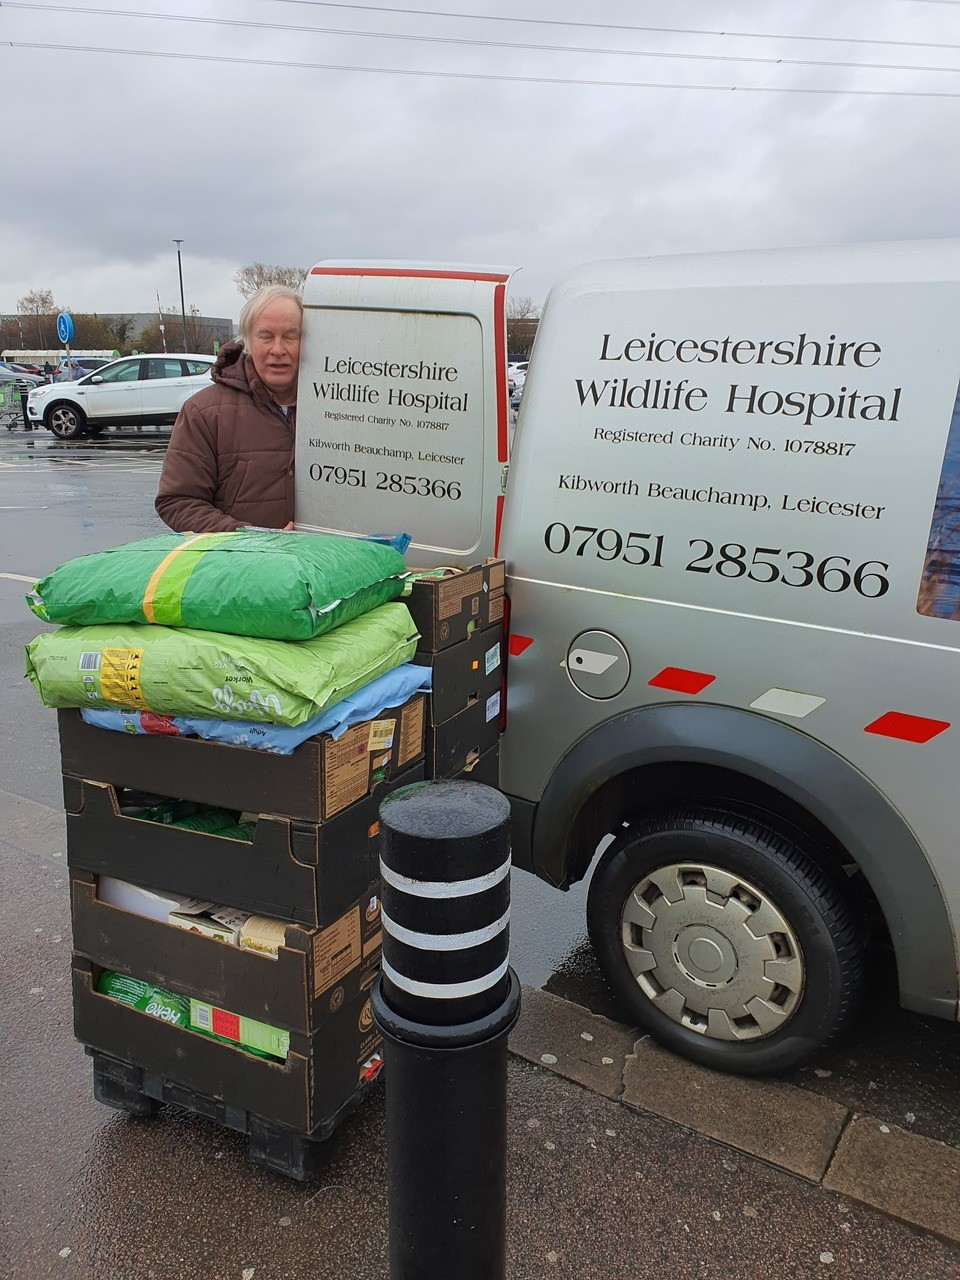 Donation to the Leicestershire wildlife hospital | Asda Leicester